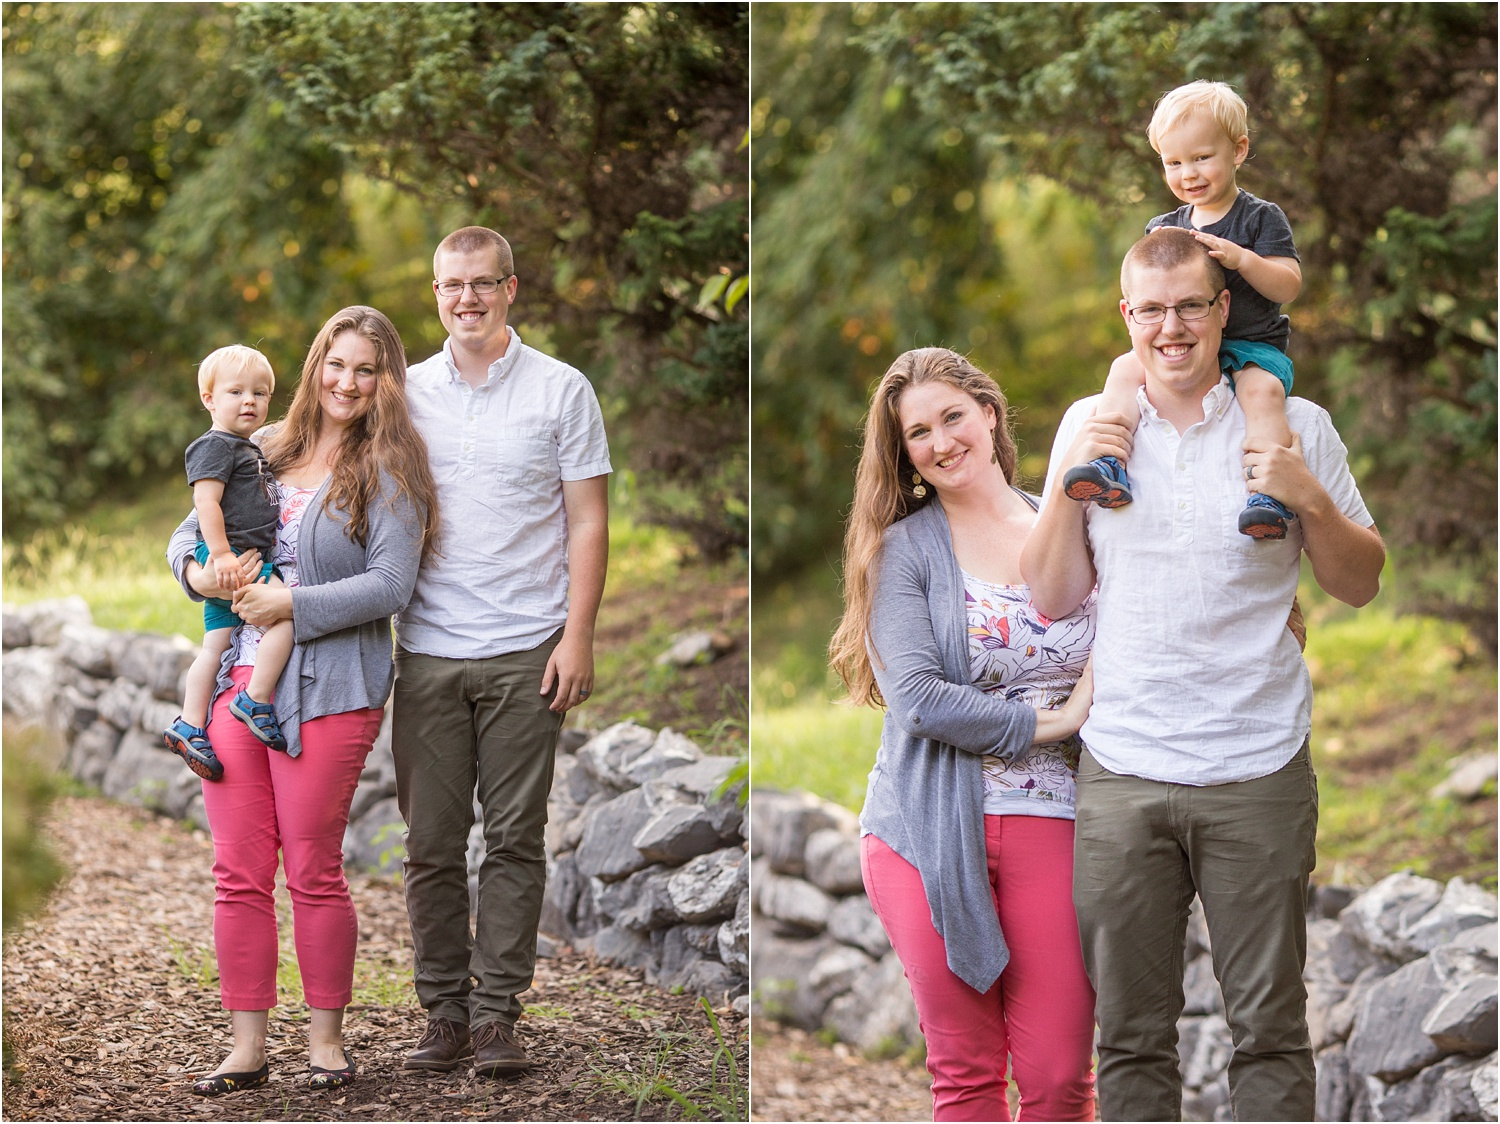 McGrath_Family_Photography_Harrisonburg_VA_0006.jpg